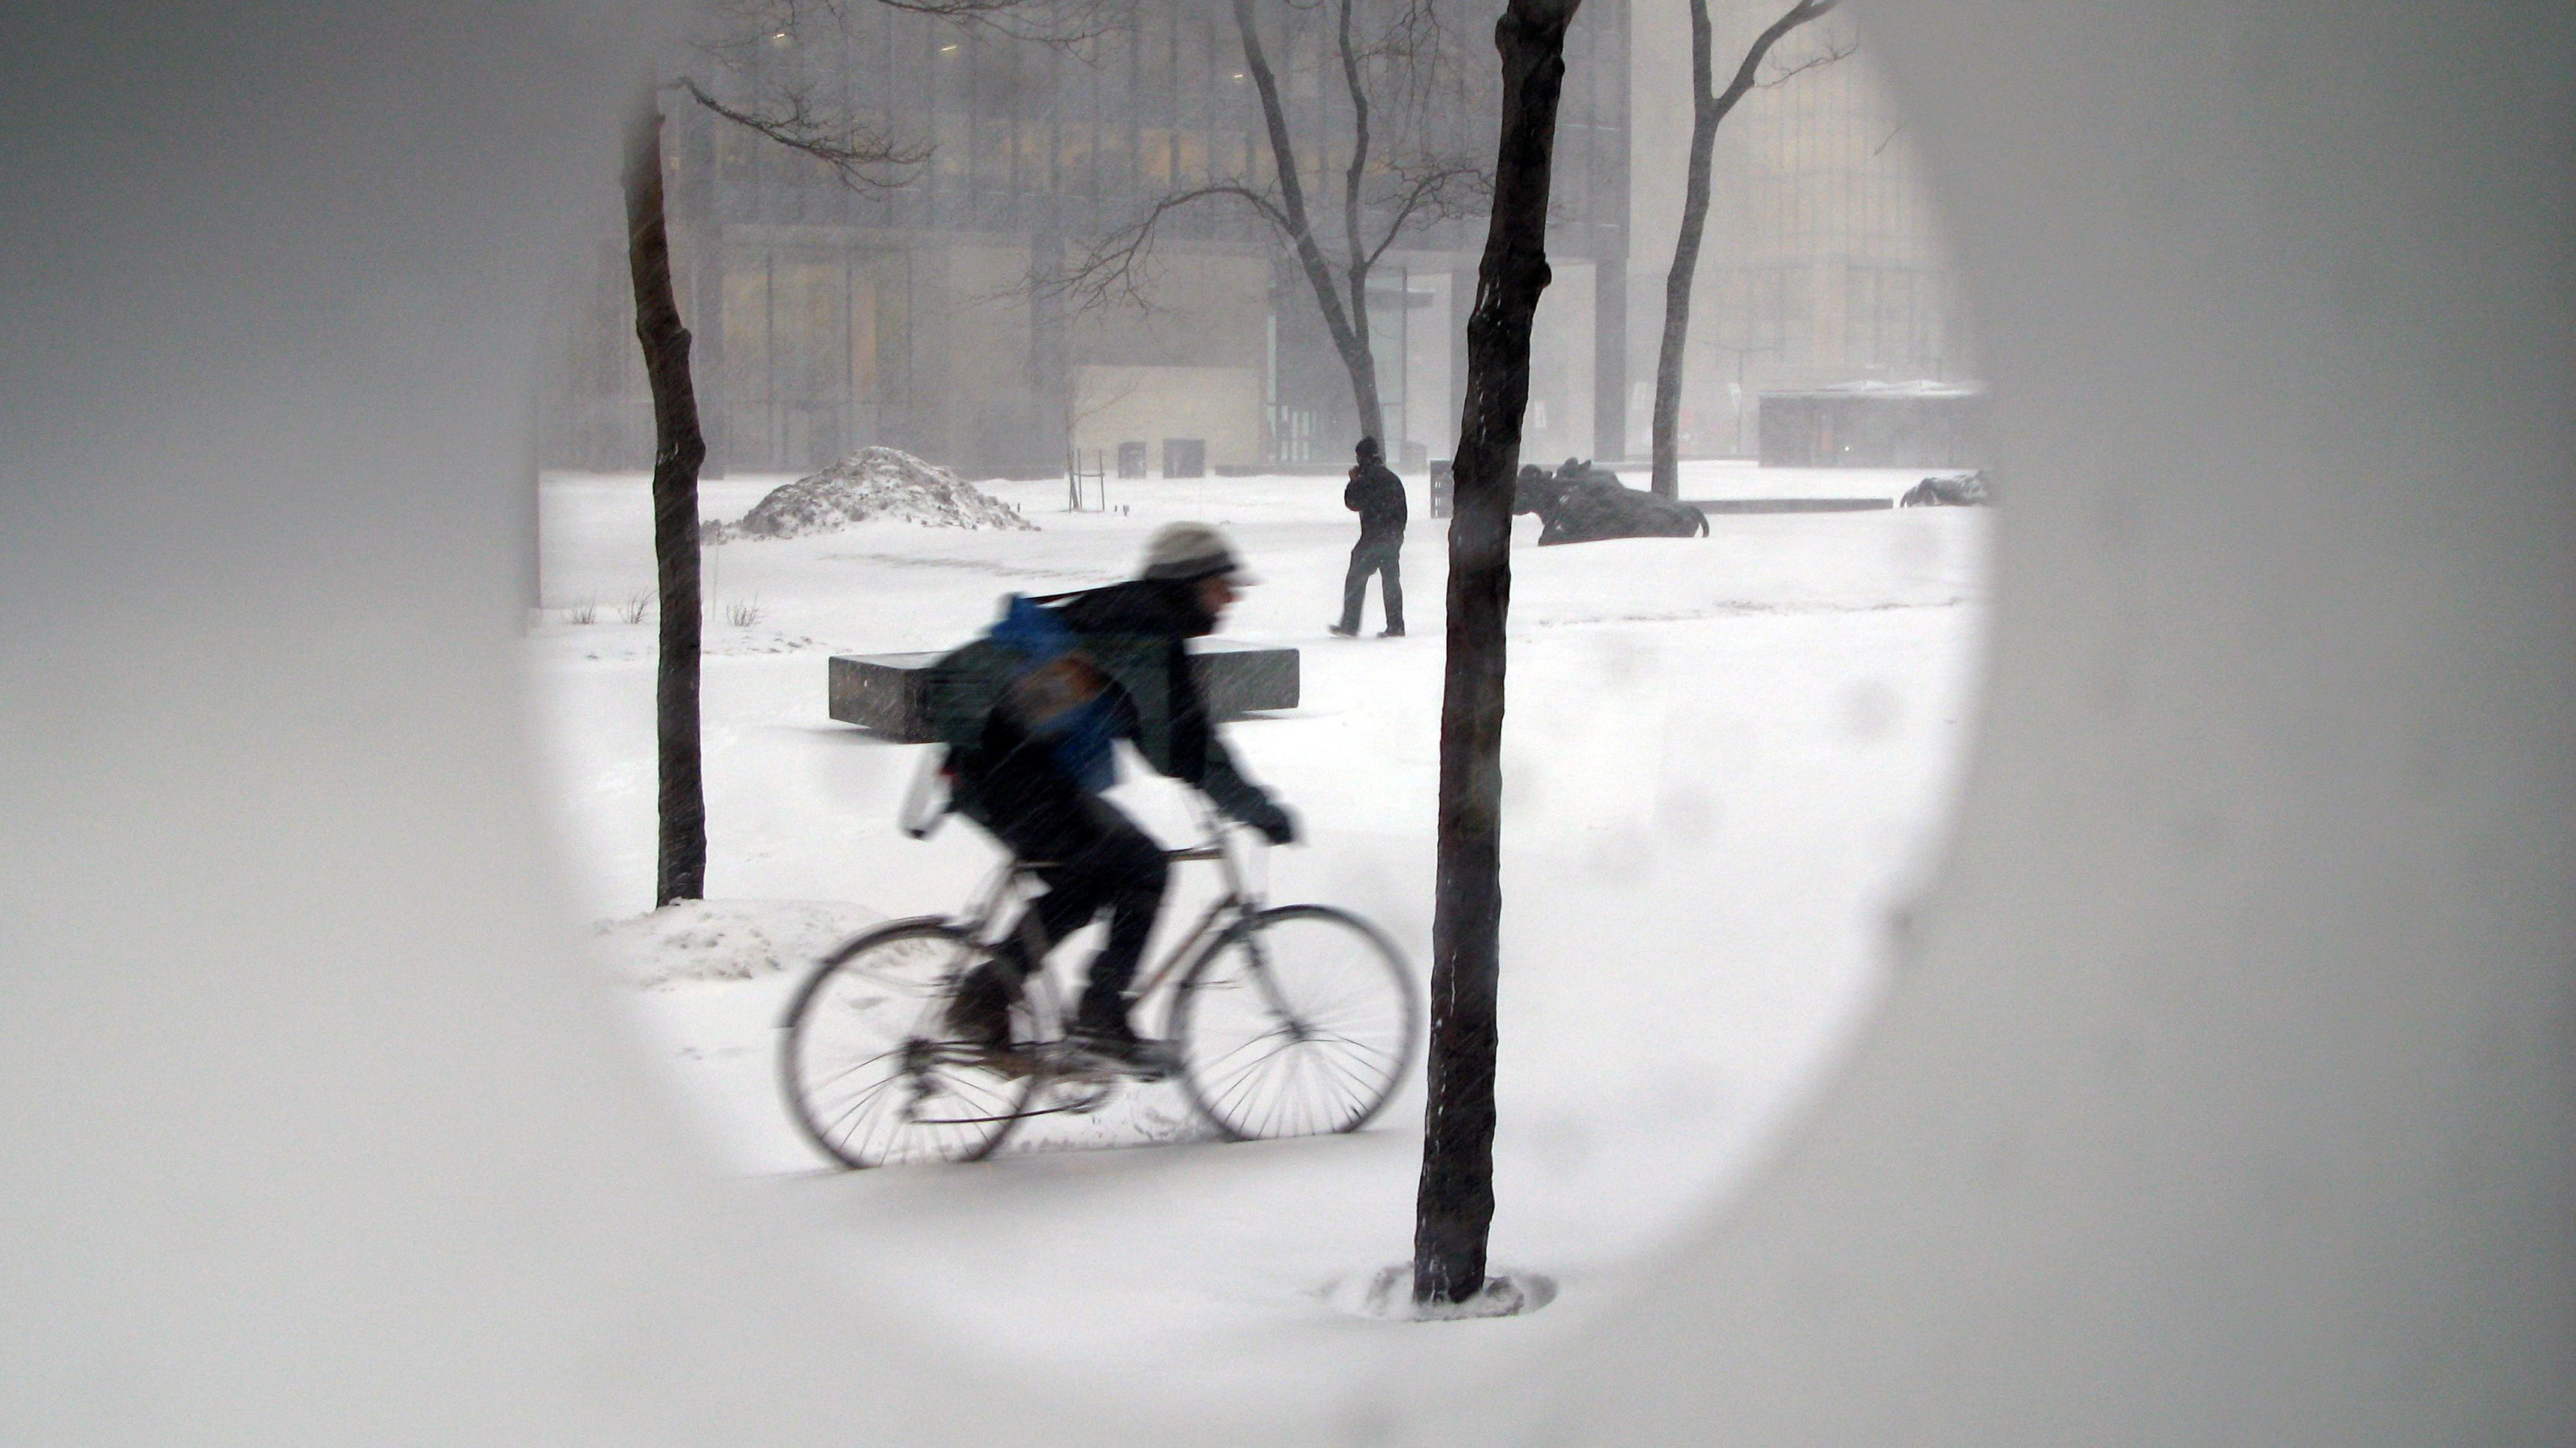 A bicycle courier cycles through a building courtyard during a snowstorm in Toronto, March 1, 2007.